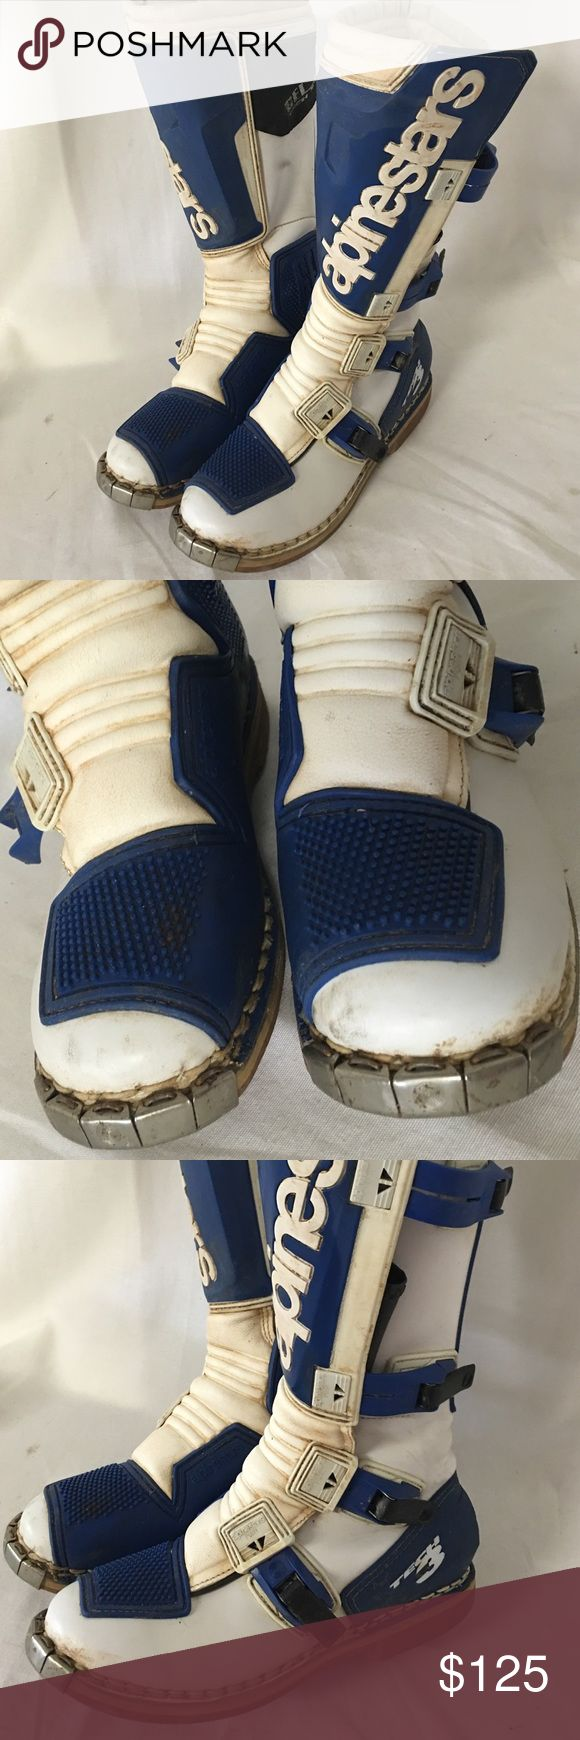 Alpinestars dirt bikes boots size 8 Mens Great quality dirt bike men's boots that has some used with some dirt noted all around and scratches on the metal toes noted but overall looks good and still has more life left. Alpinestars Shoes Boots